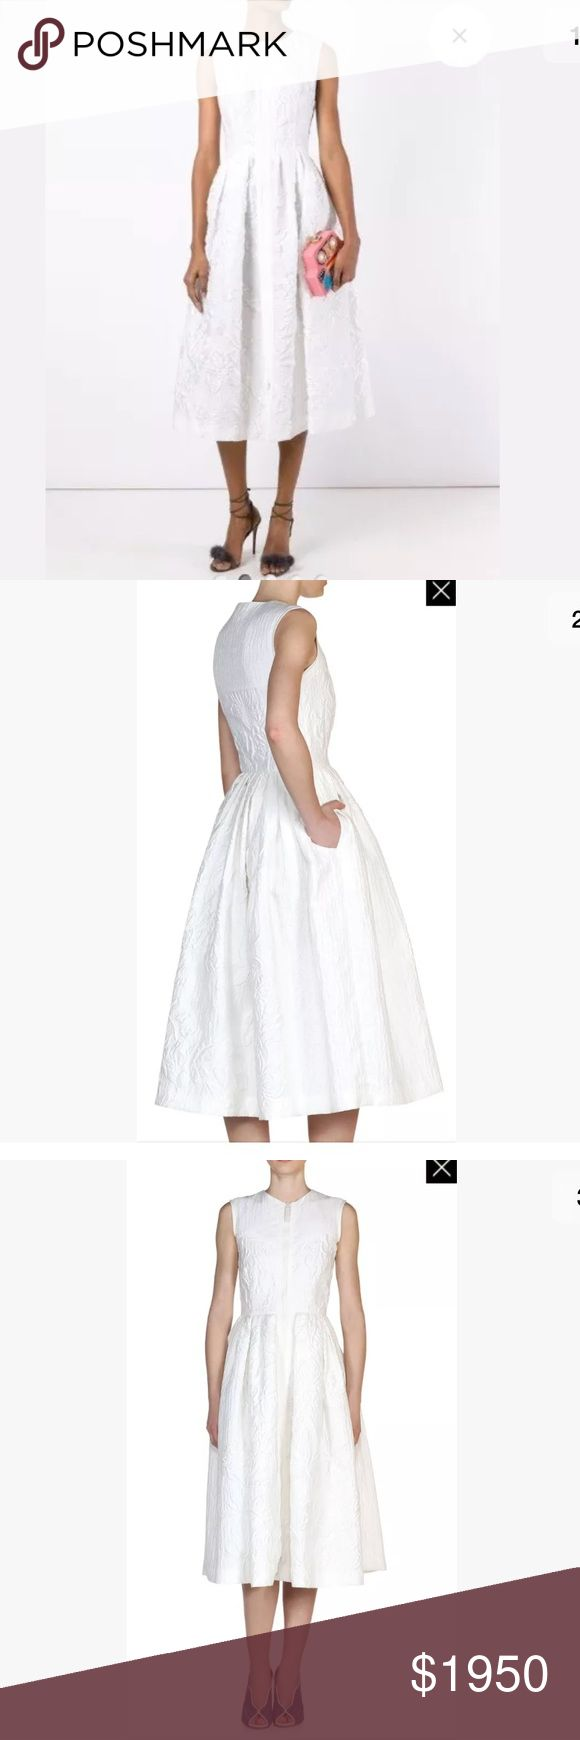 """💯% Authentic Brand New Fendi White Dress * Zip up dress in cotton silk blend jacquard  * Roundneck  * Sleevleless  * Zip front closure  * Pleated A-line skirt  * About 45"""" from shoulder to hem  * Cotton/silk/ nylon  * Dry clean  * Made in Italy  * Model shown is 5'10 (177cm) wearing US size 4 Fendi Dresses"""